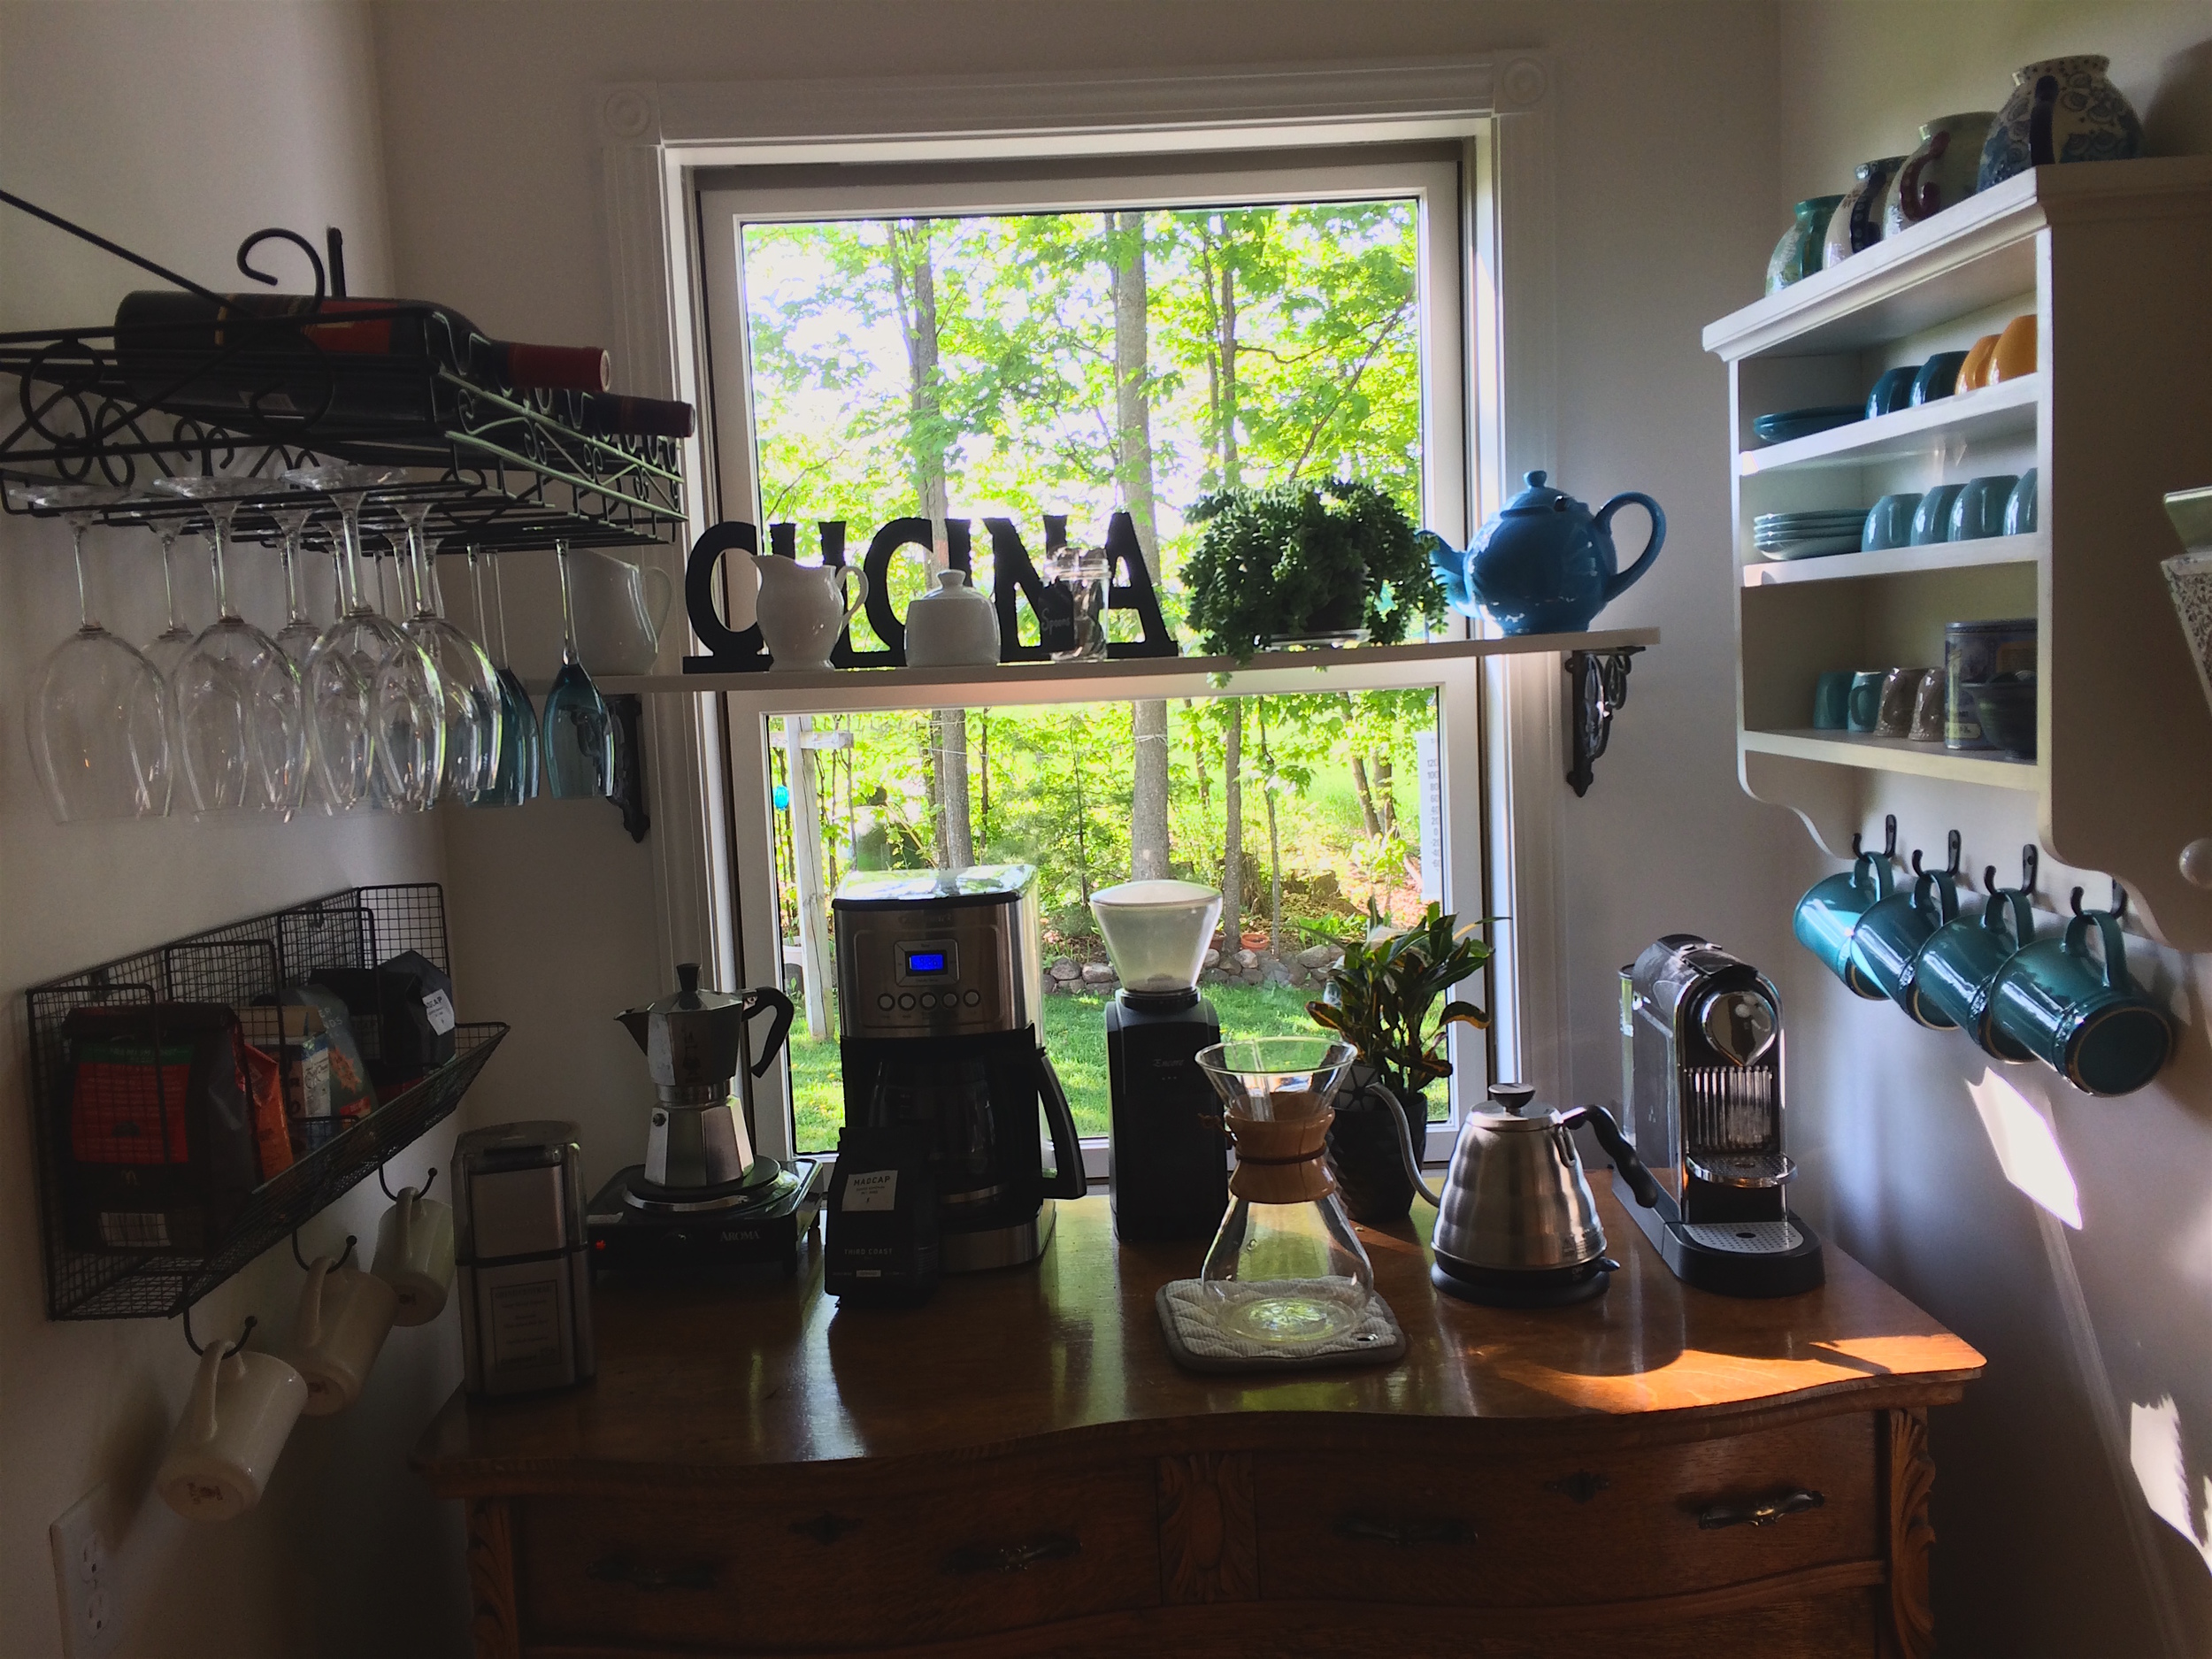 My mom's coffee bar.  A nice mix of the Italian Moka pot on the left, an American drip coffee machine, Chemex, and a French Nespresso machine.